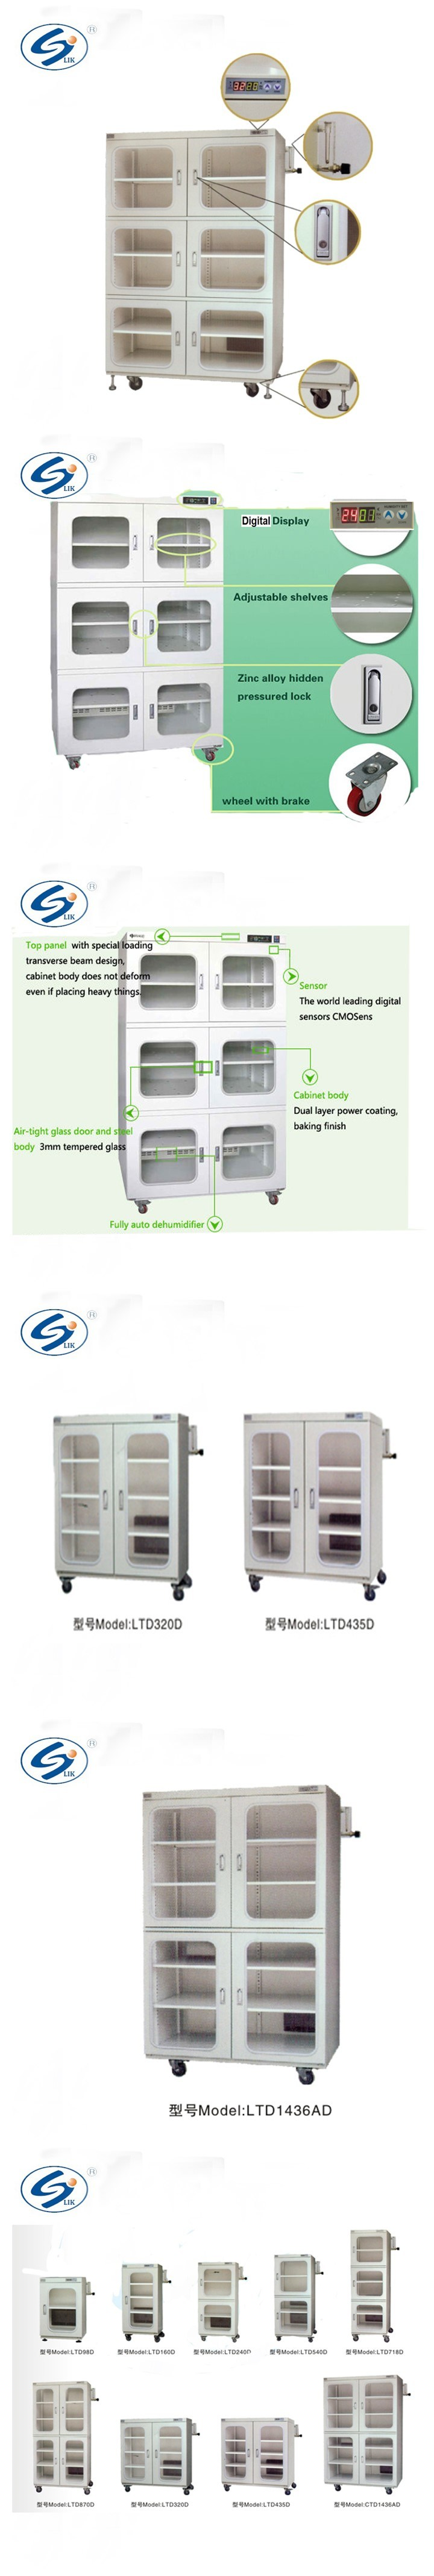 Electronic Nitrogen Storage Drying Cabinet for IC, PCB, Batteries